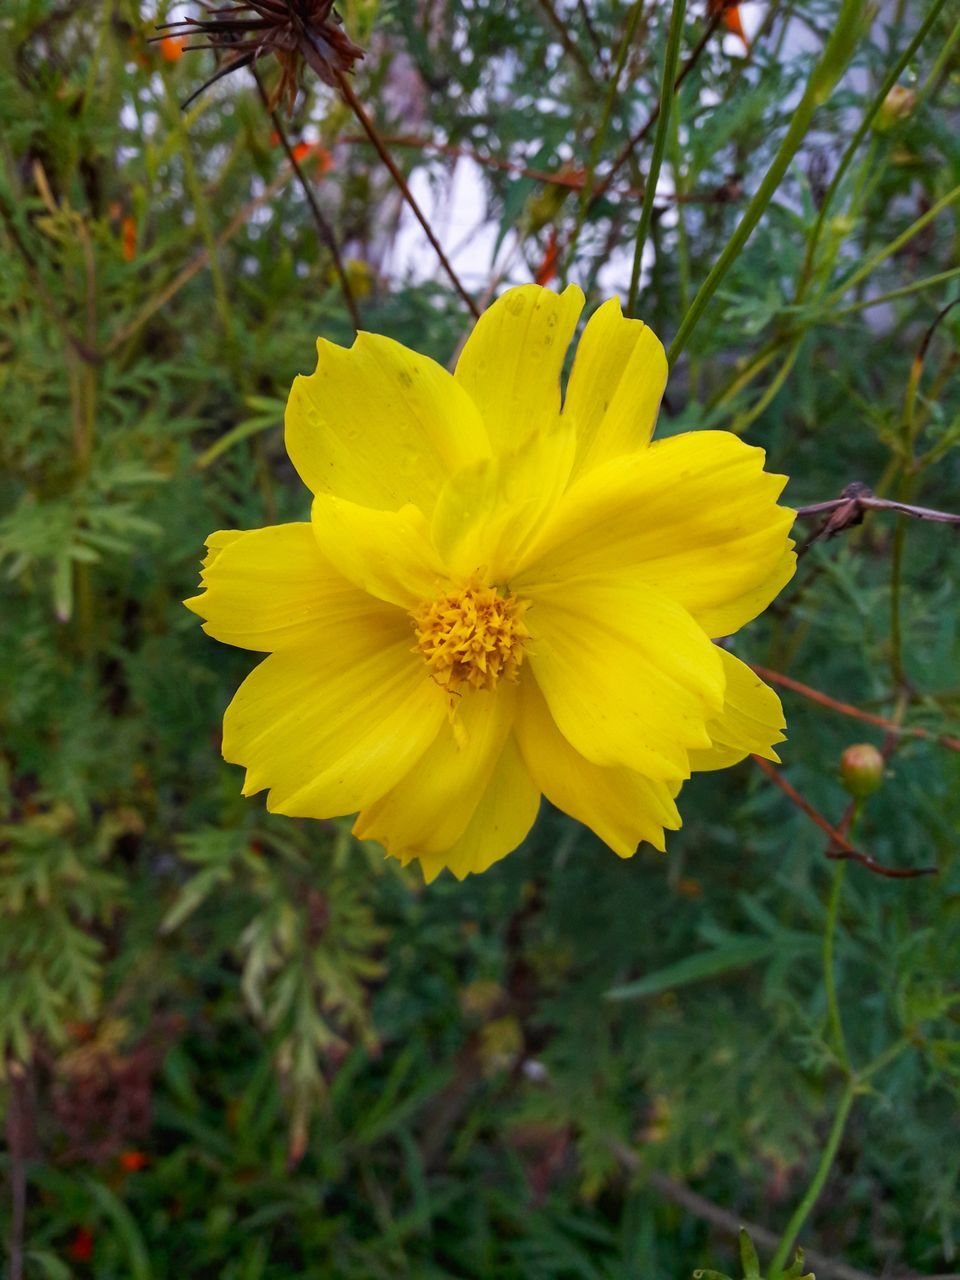 flower, yellow, petal, nature, beauty in nature, growth, fragility, plant, flower head, freshness, blooming, no people, outdoors, close-up, day